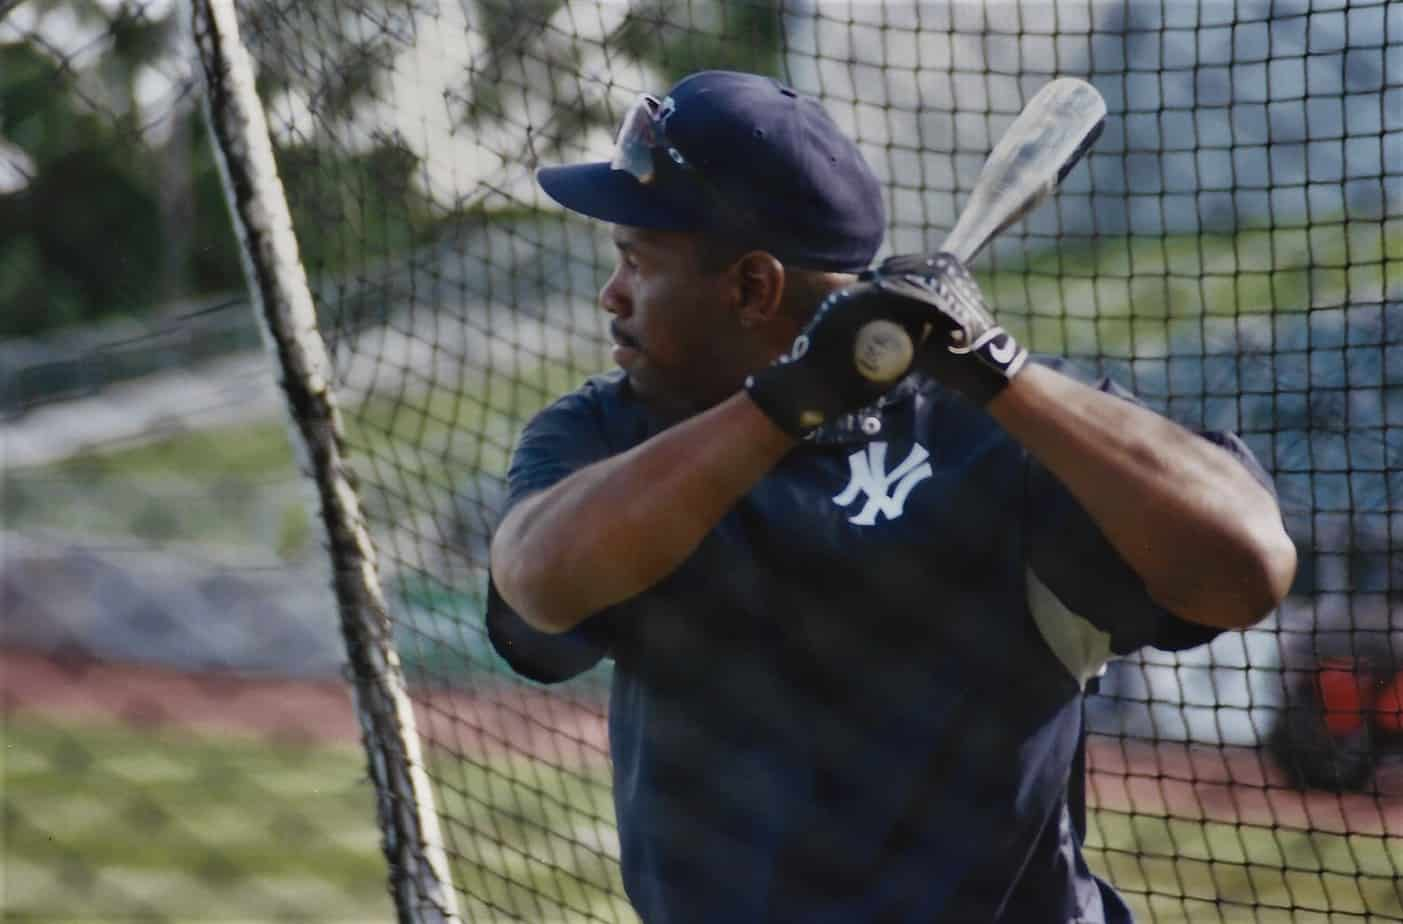 Raines' road to Cooperstown passed through New Jersey